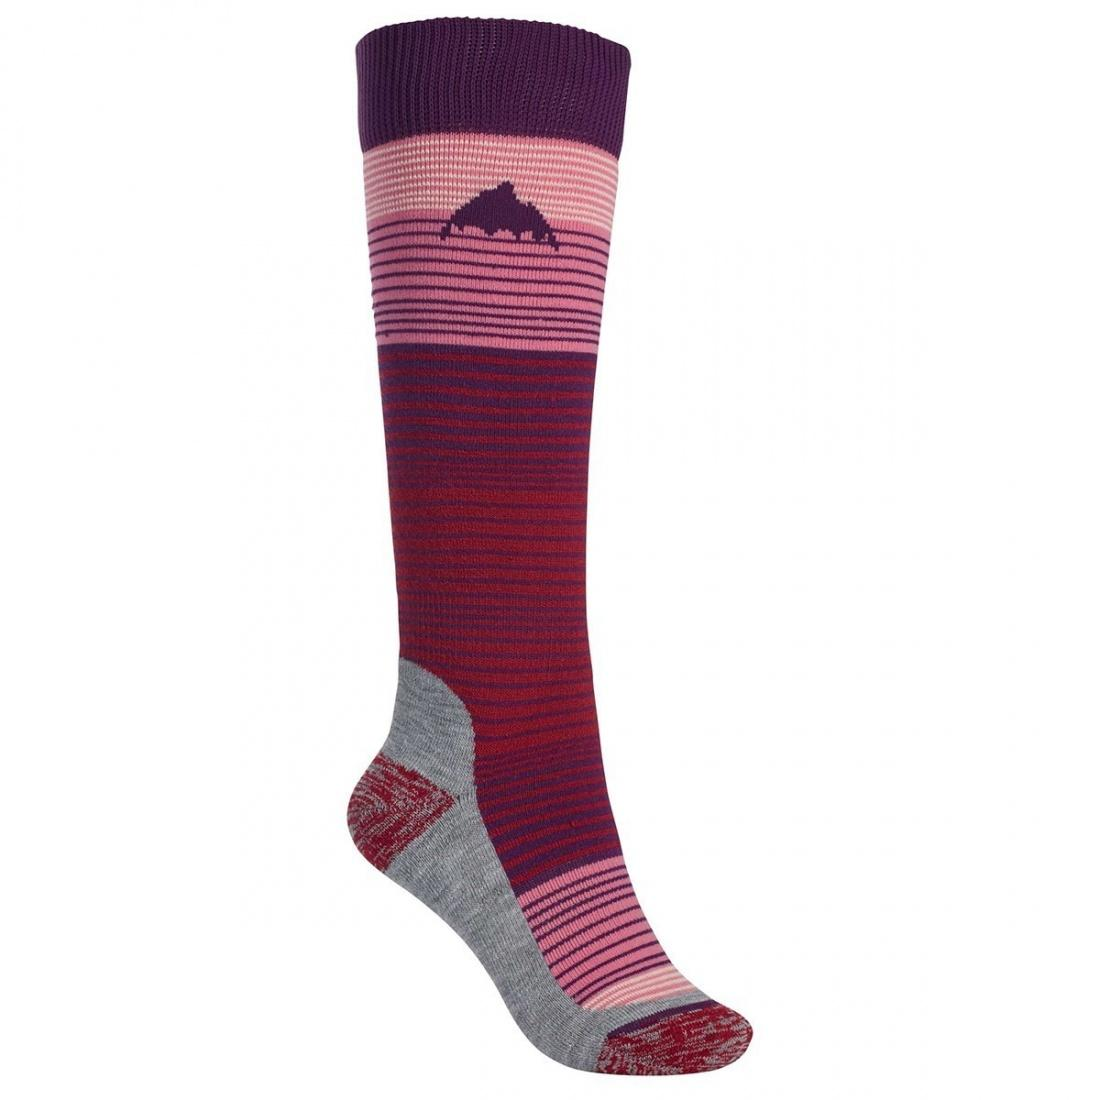 Burton Термоноски Burton Scout Sock STARLING S/M burton термоноски burton party sock wings fw18 l